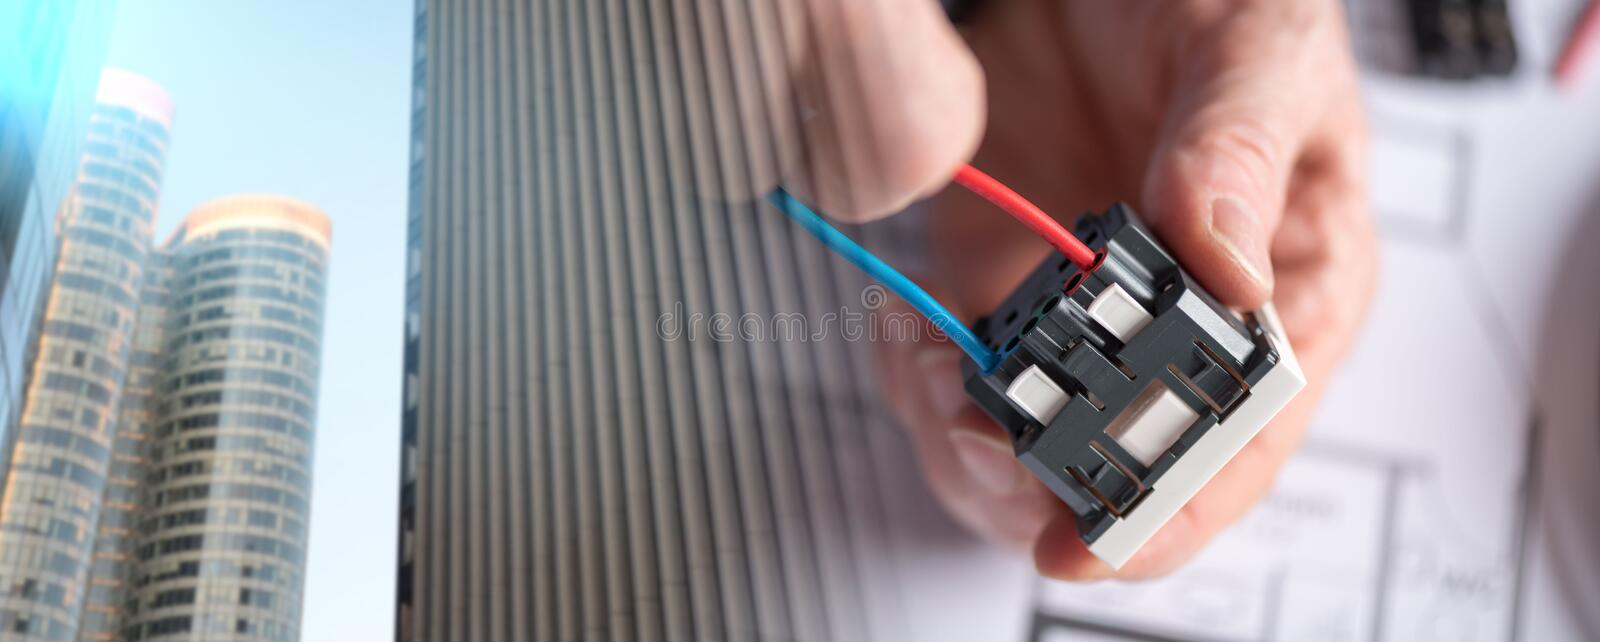 Electrician connecting a wire into a power socket; multiple expo. Electrician hands connecting a wire into a power socket; multiple exposure stock photo